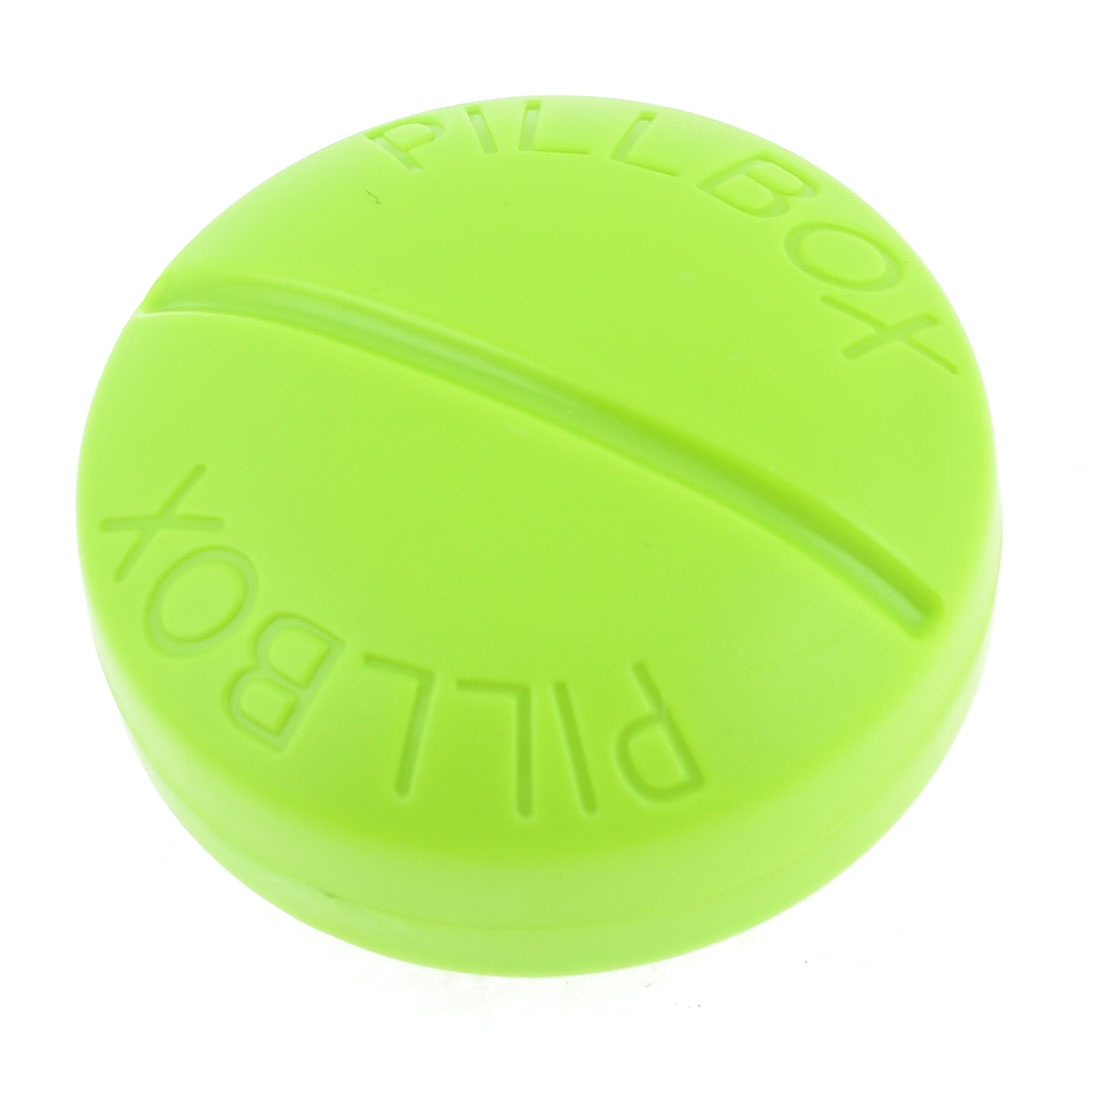 Home Travel Plastic Green Round 4 Compartments Medicine Storage Holder Pill Box